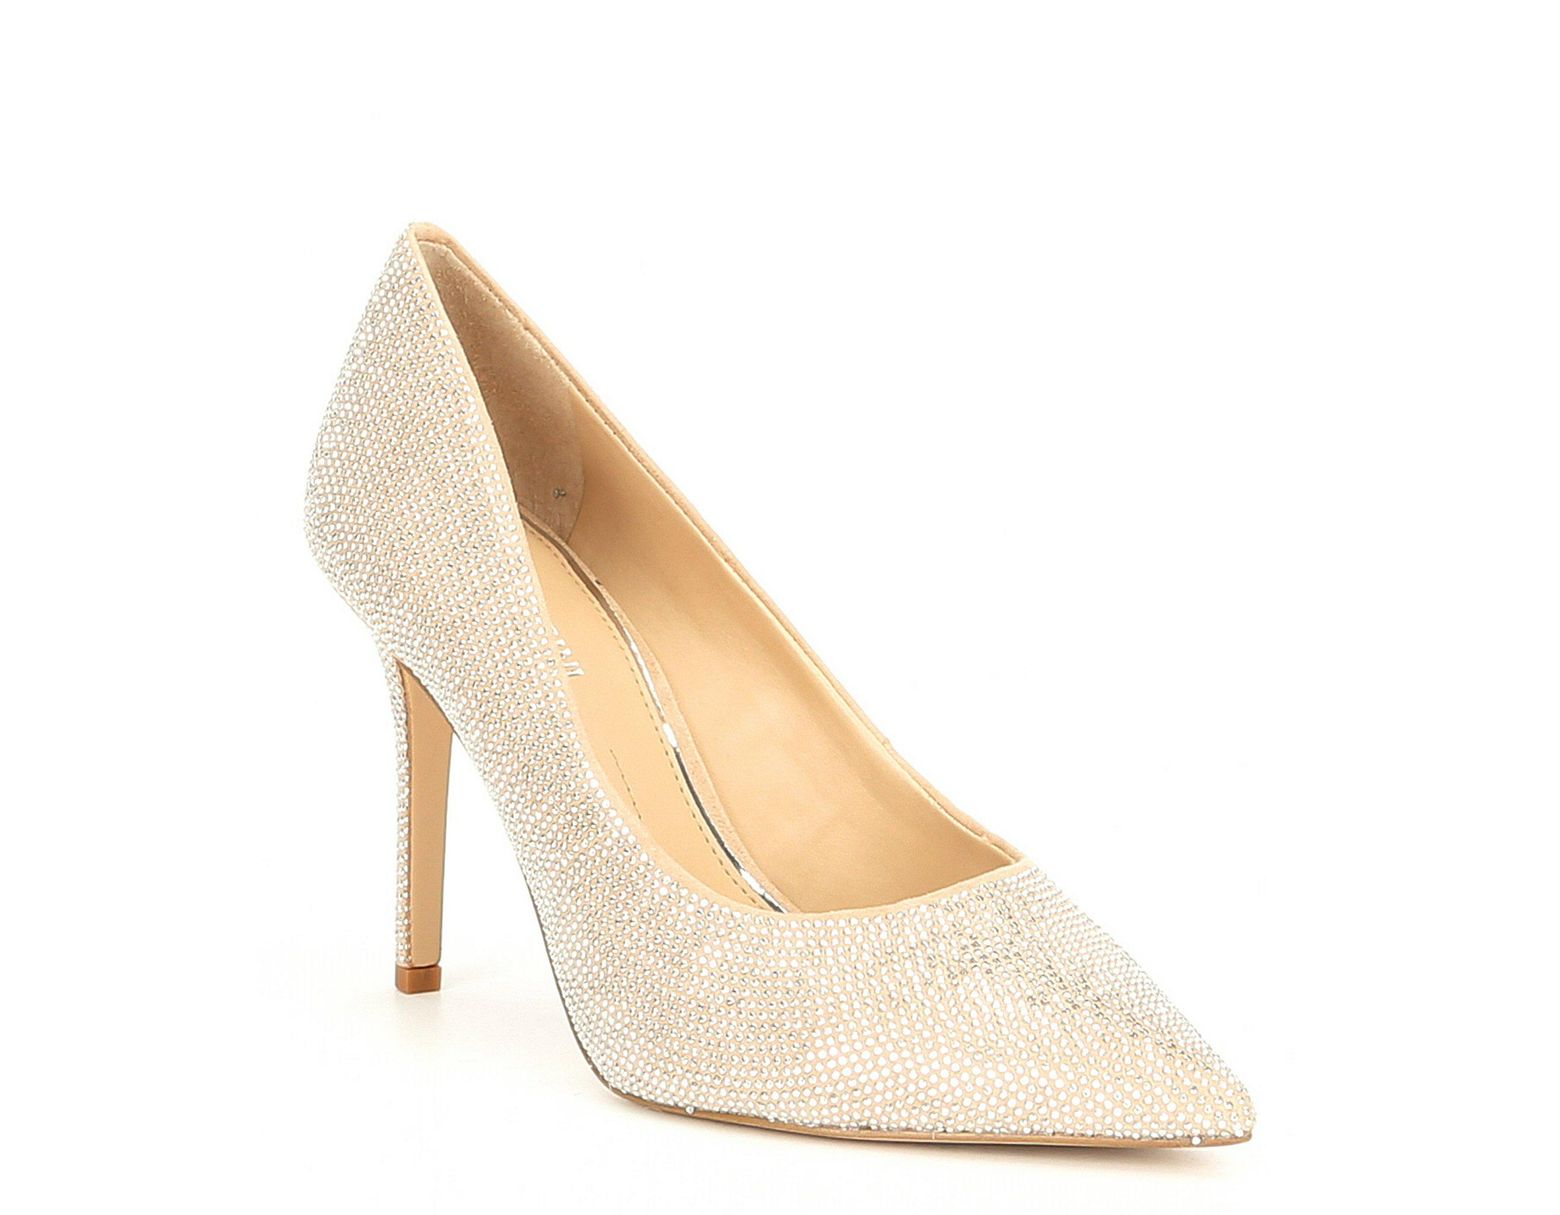 6a9b2c8710 Gianni Bini Maxxa Microsuede Studded Pumps in Natural - Lyst